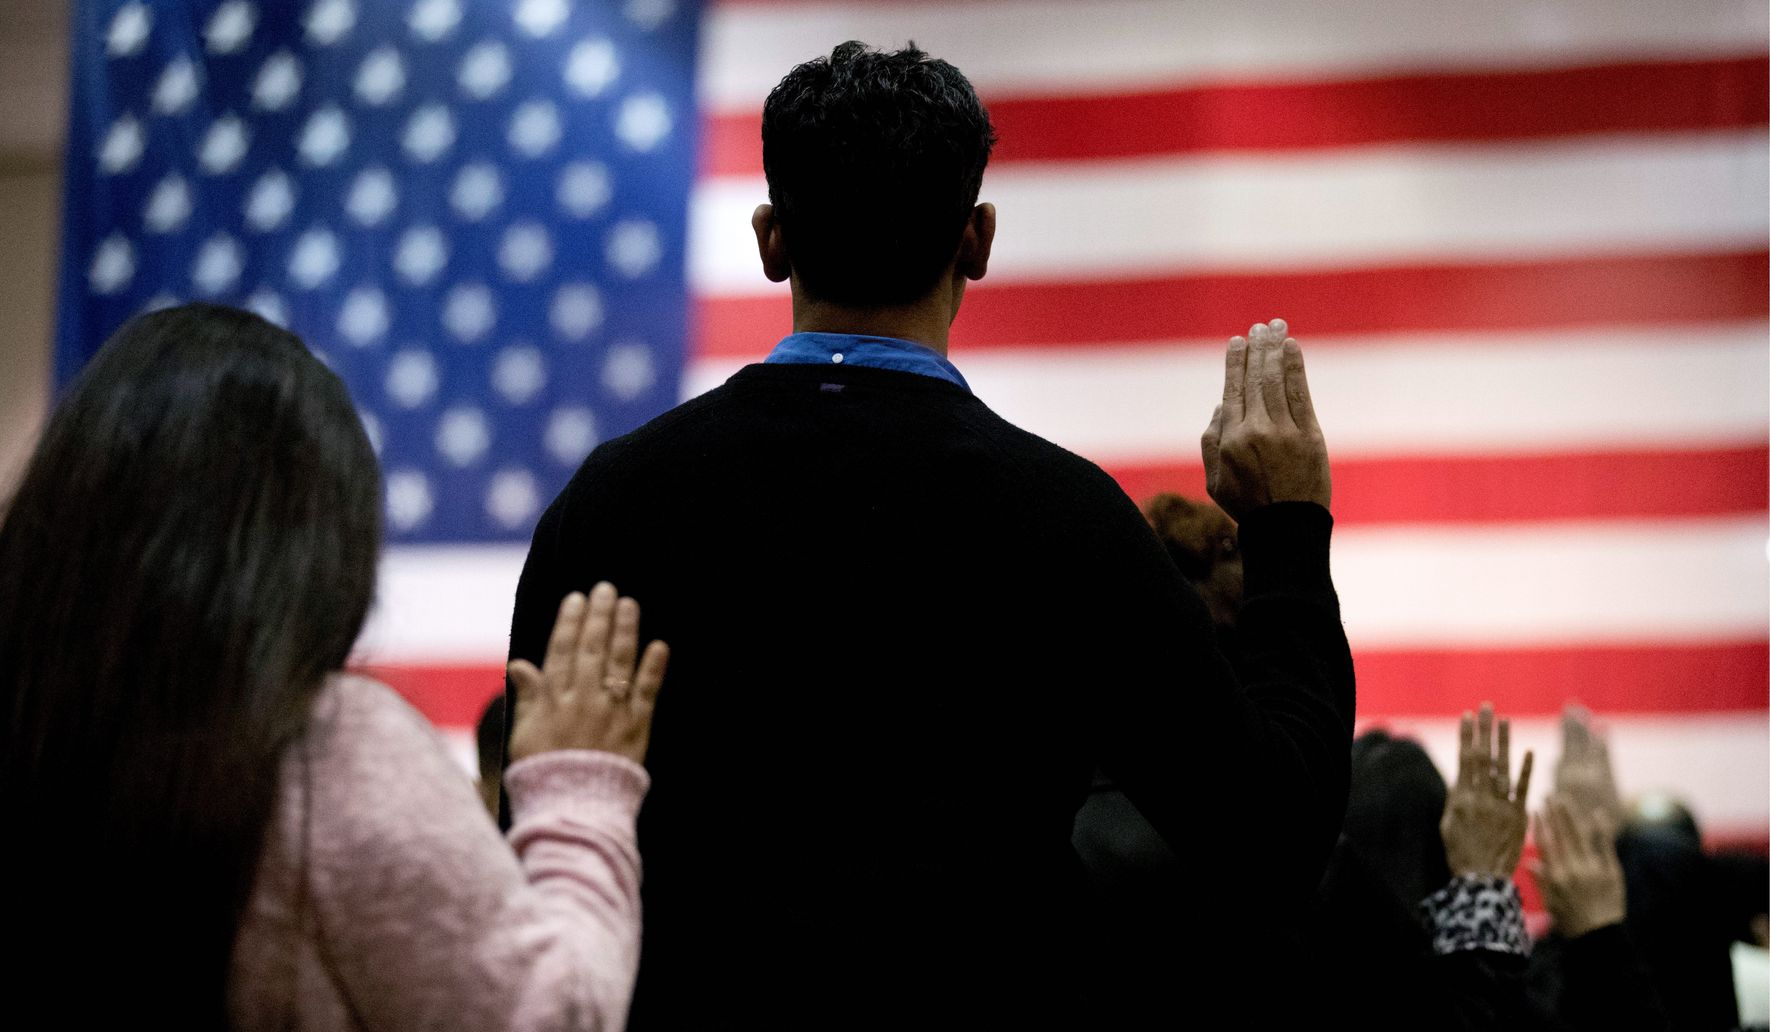 Naturalization delay prevents new citizens from voting